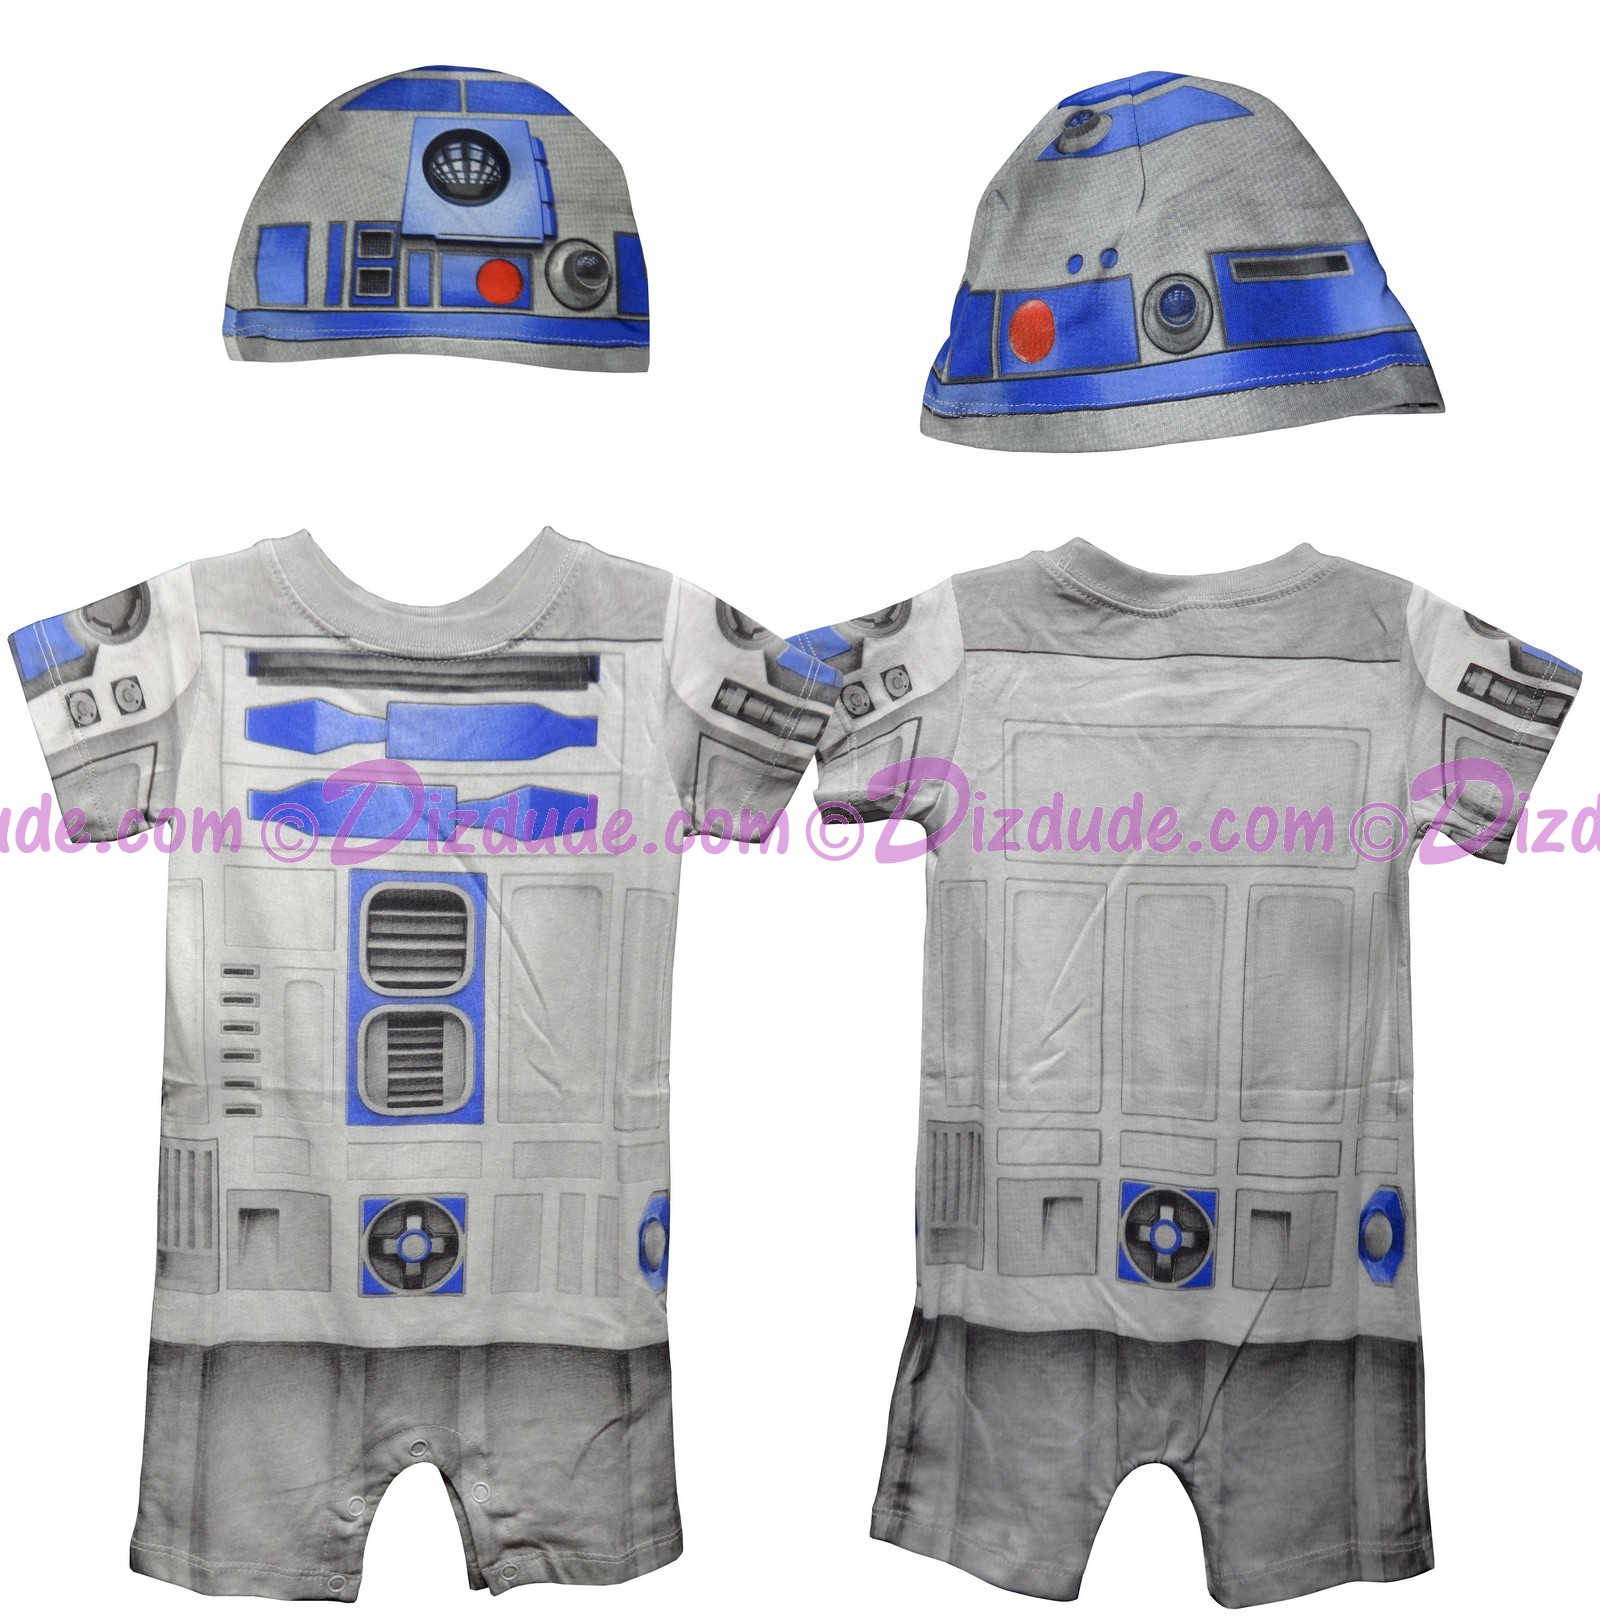 Disney Star Wars R2-D2 Baby Onesie - Costume With Hat (All Over Print) © Dizdude.com